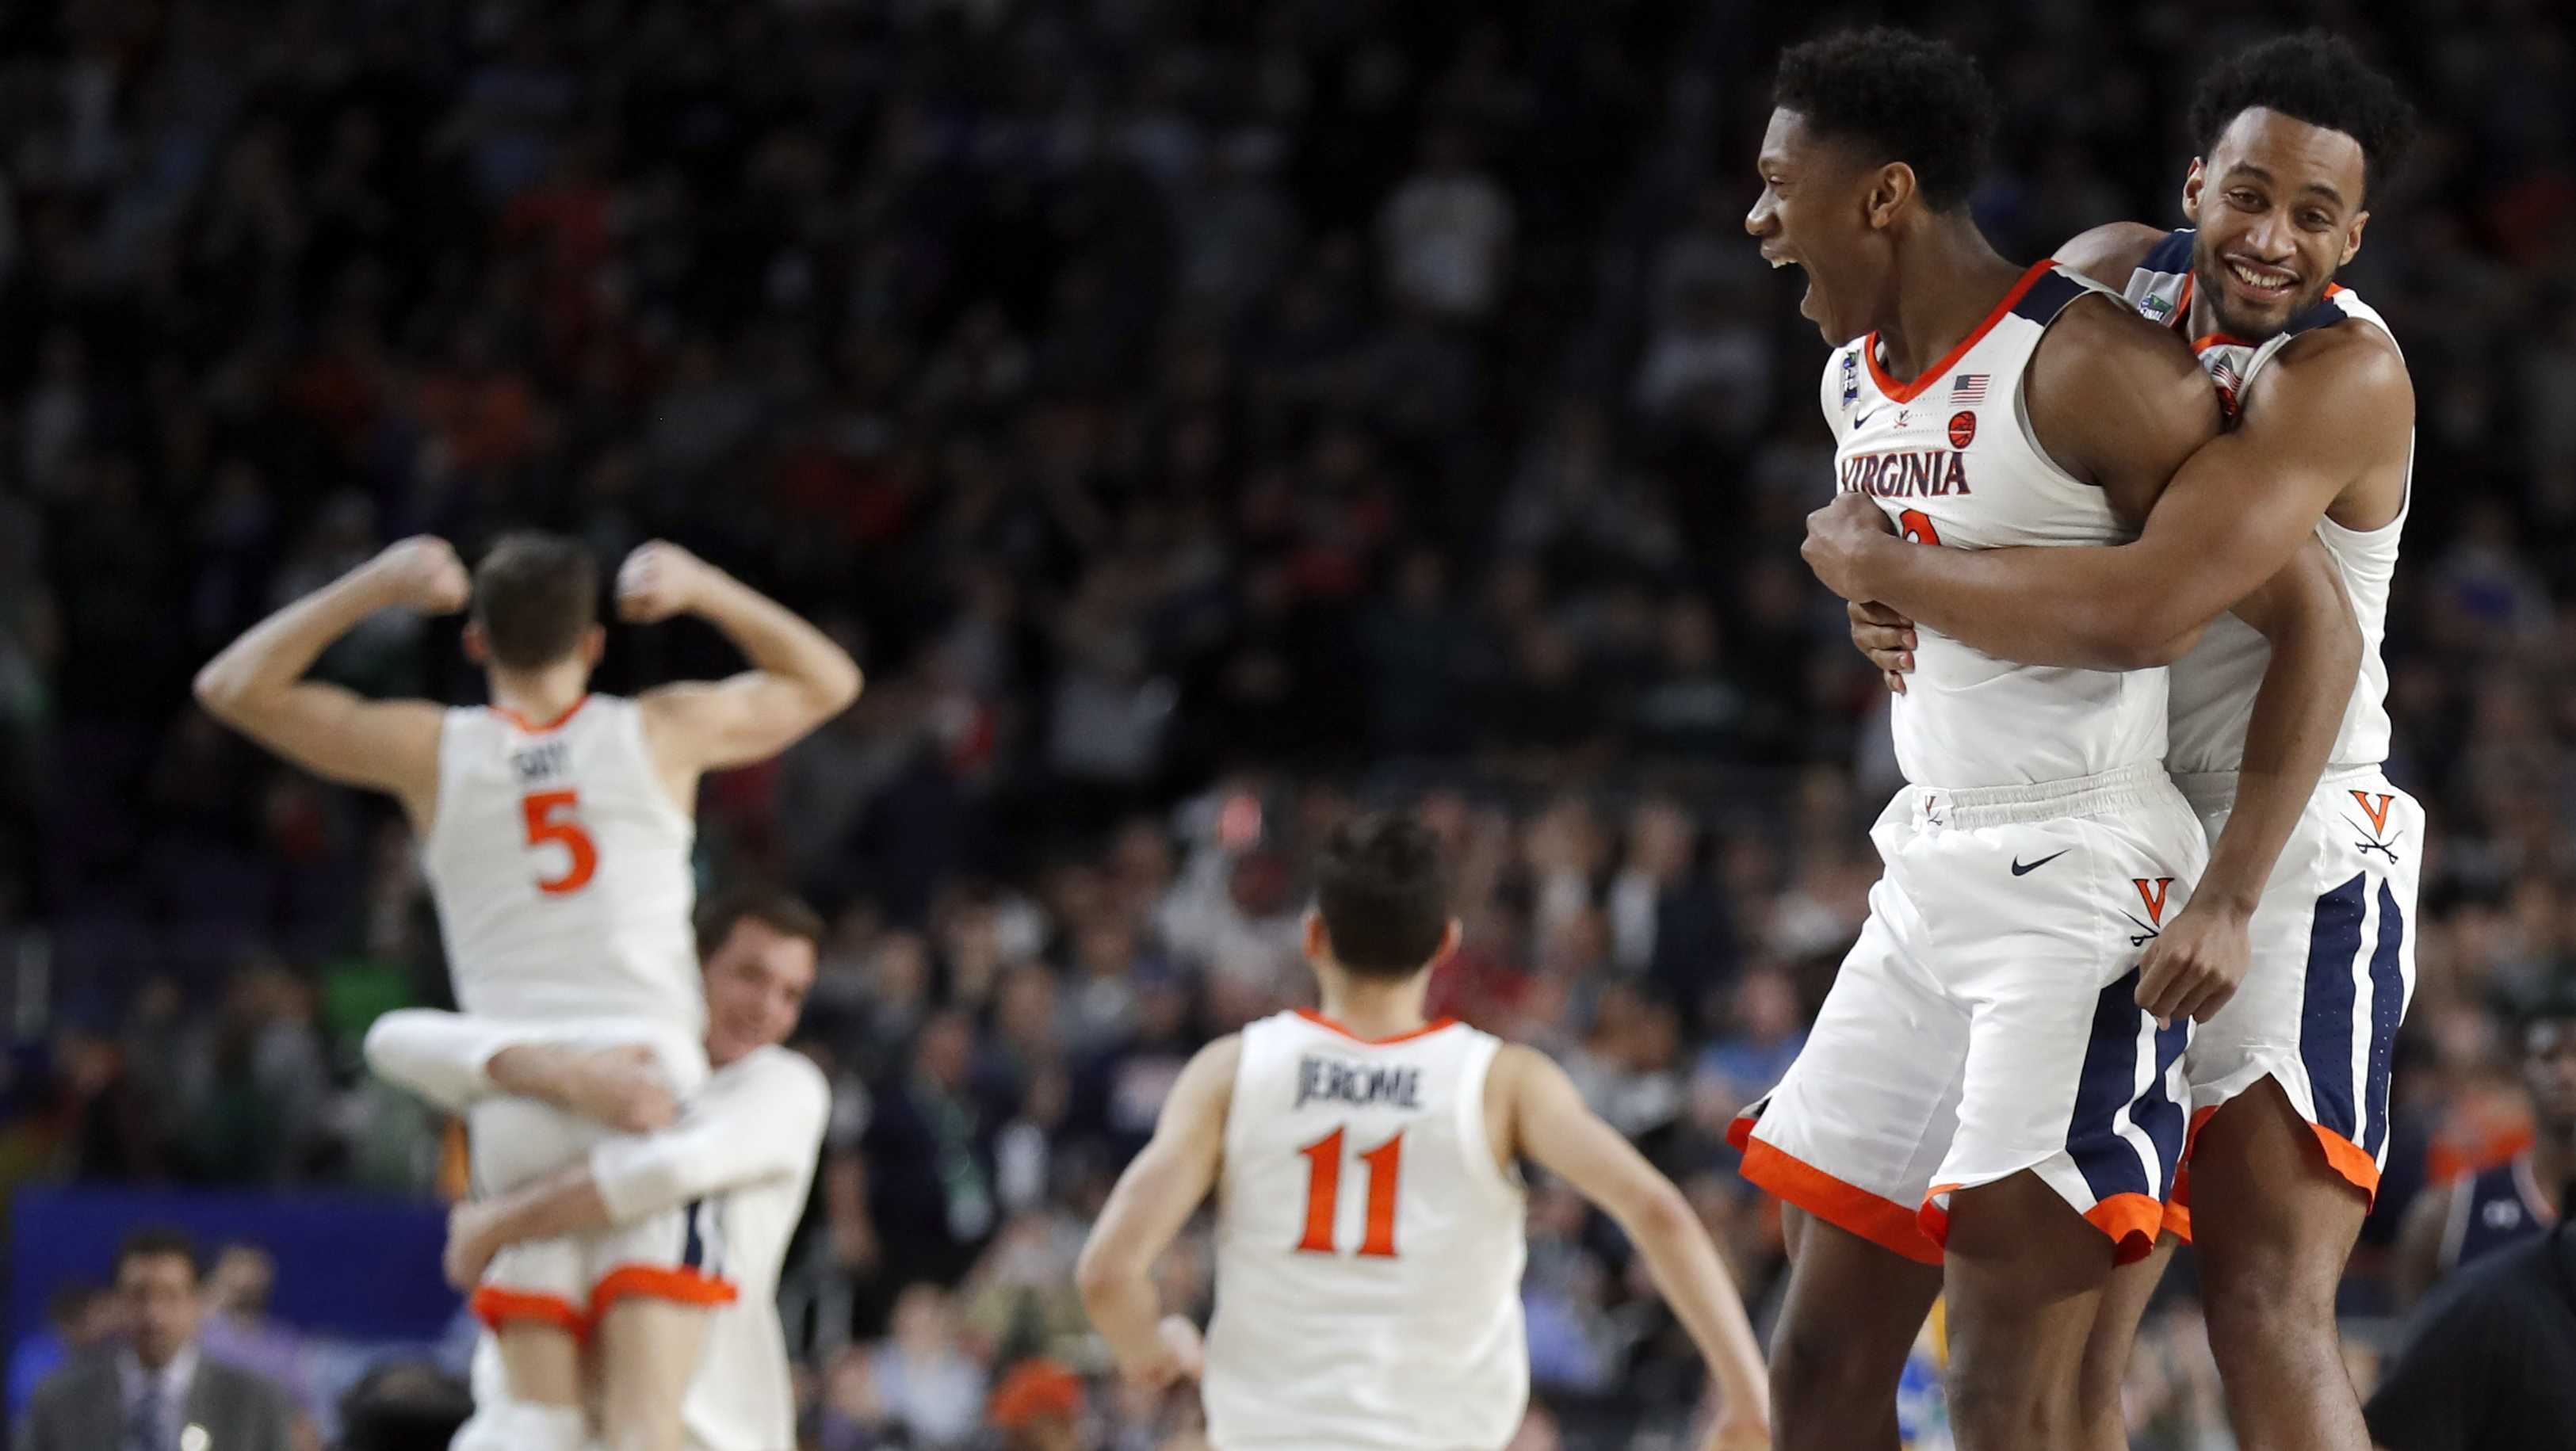 Virginia players celebrate after defeating Auburn 63-62 in the semifinals of the Final Four NCAA college basketball tournament, Saturday, April 6, 2019, in Minneapolis.